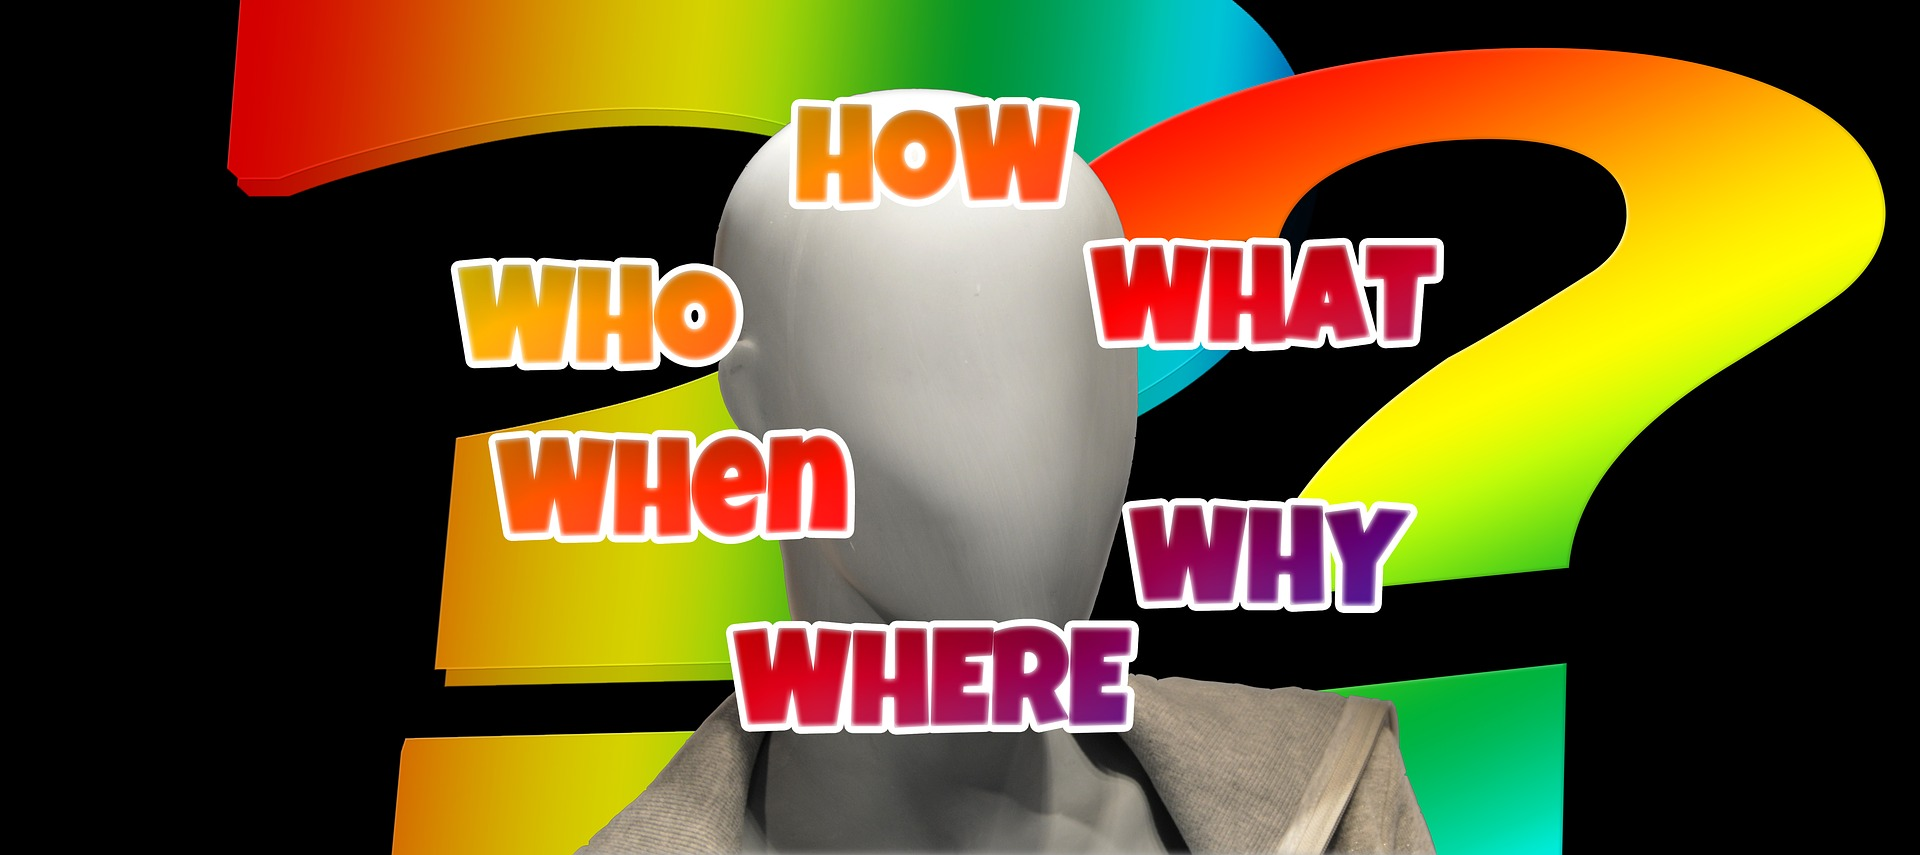 answer these questions to increase comprehension